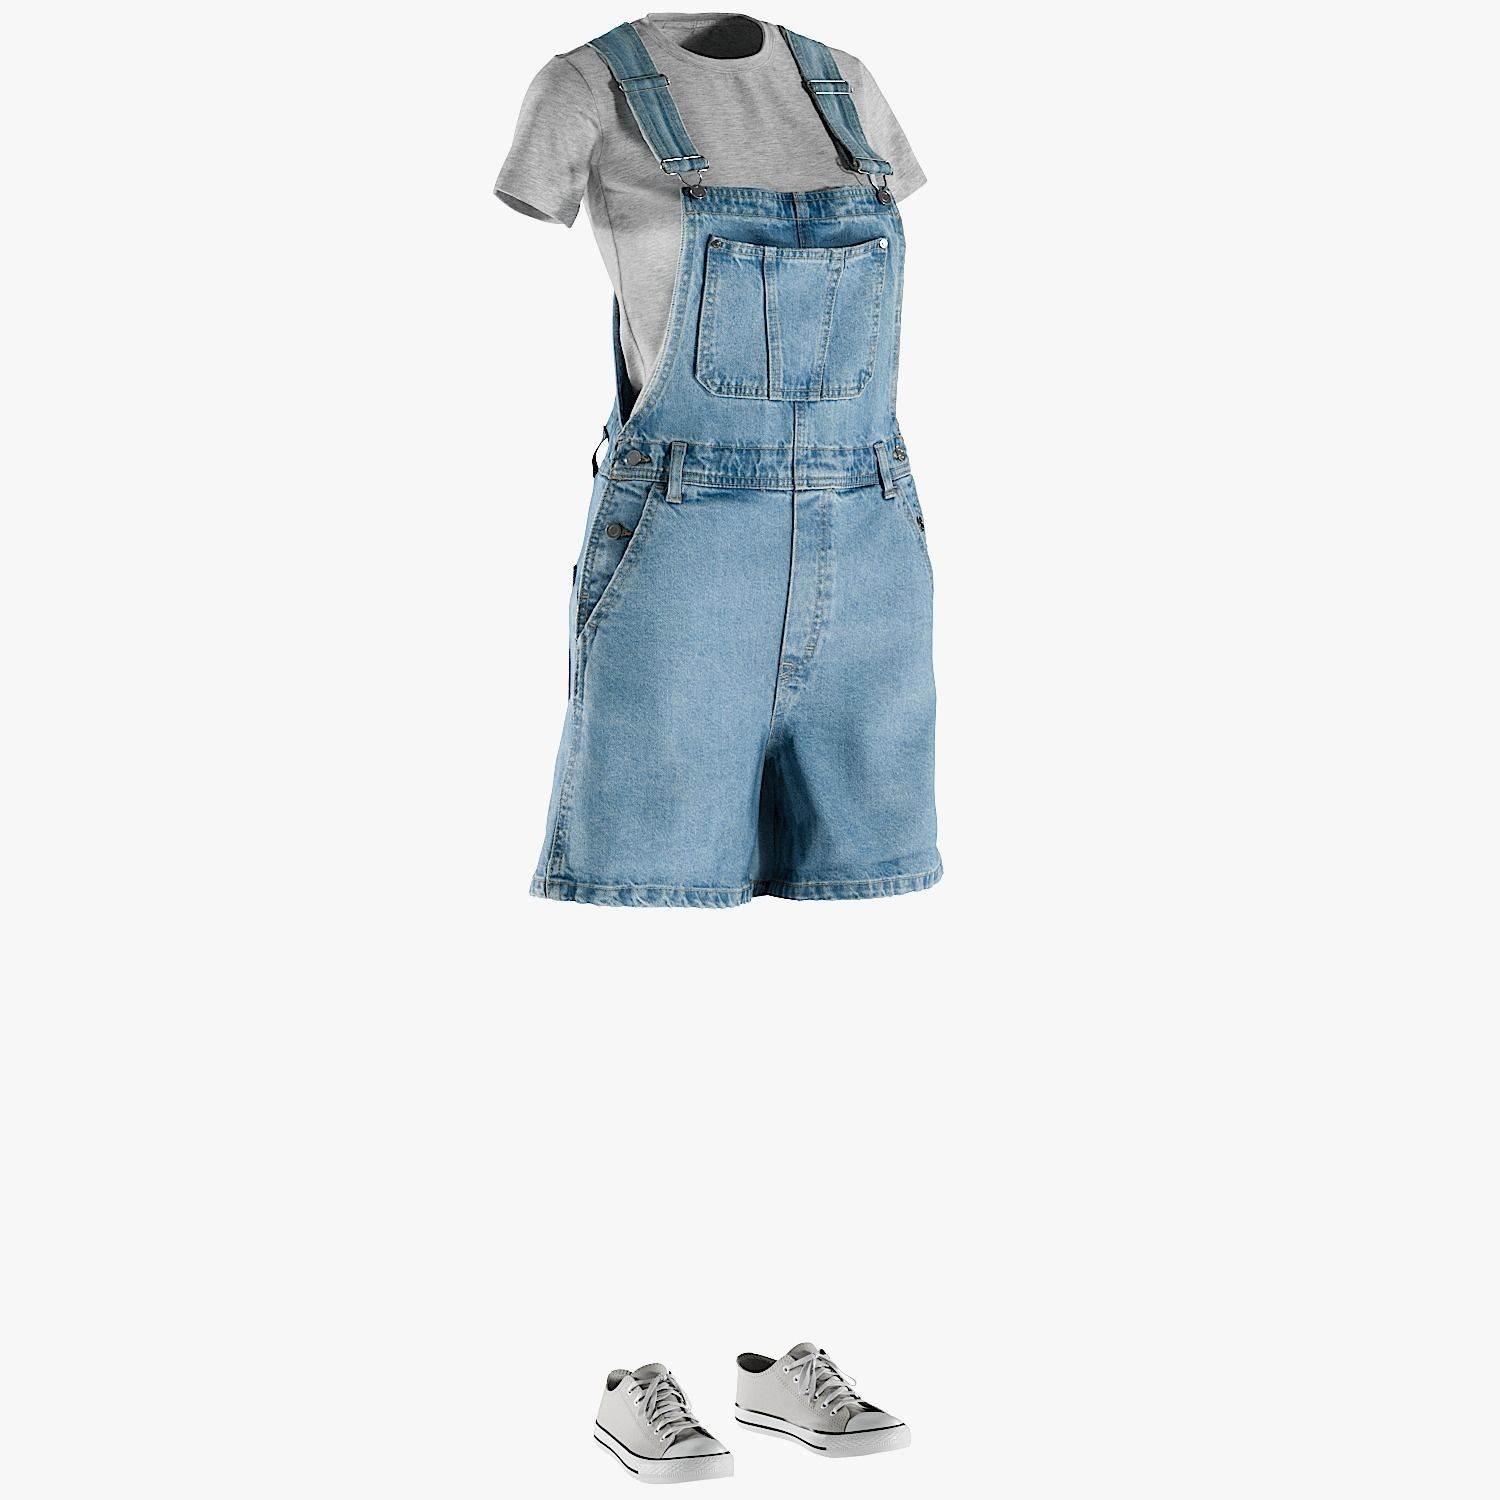 Womens Jean with Overall Tshirt Shoes 1